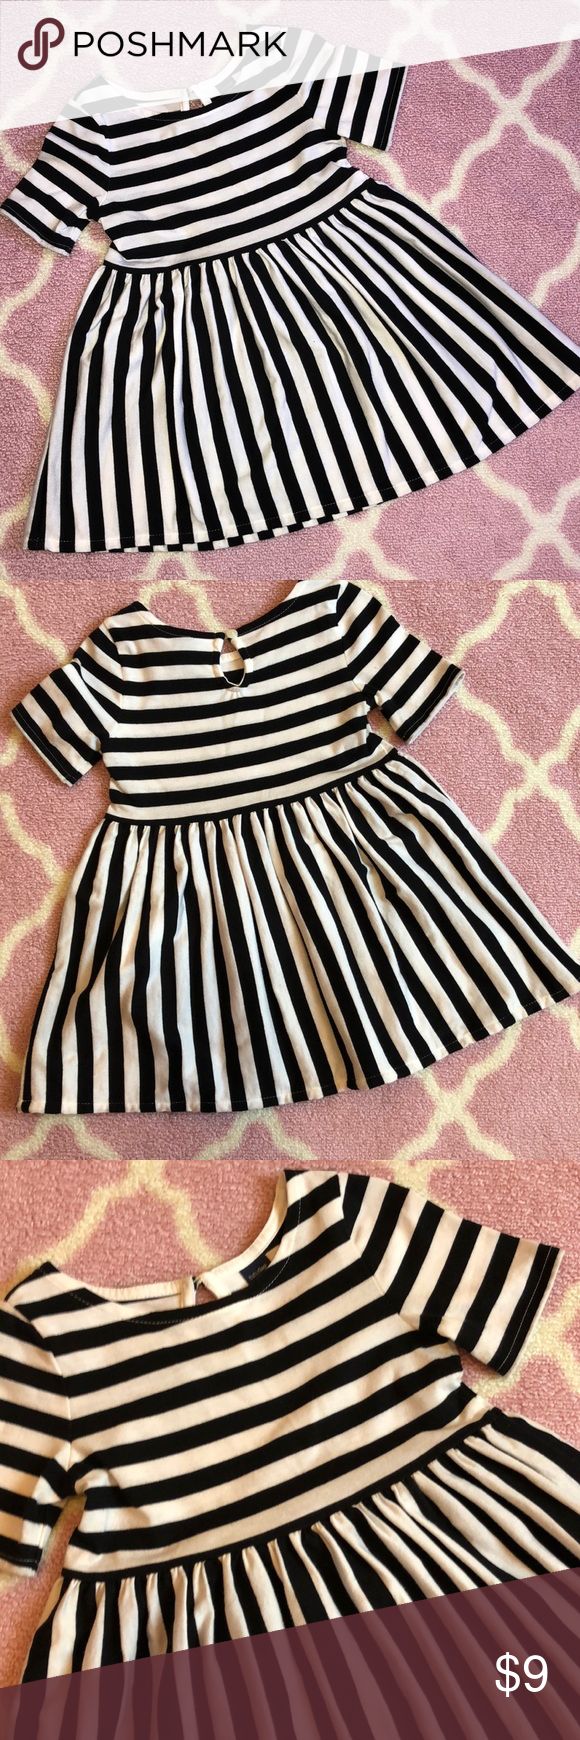 65230a0541ff Striped black and white baby gap dress